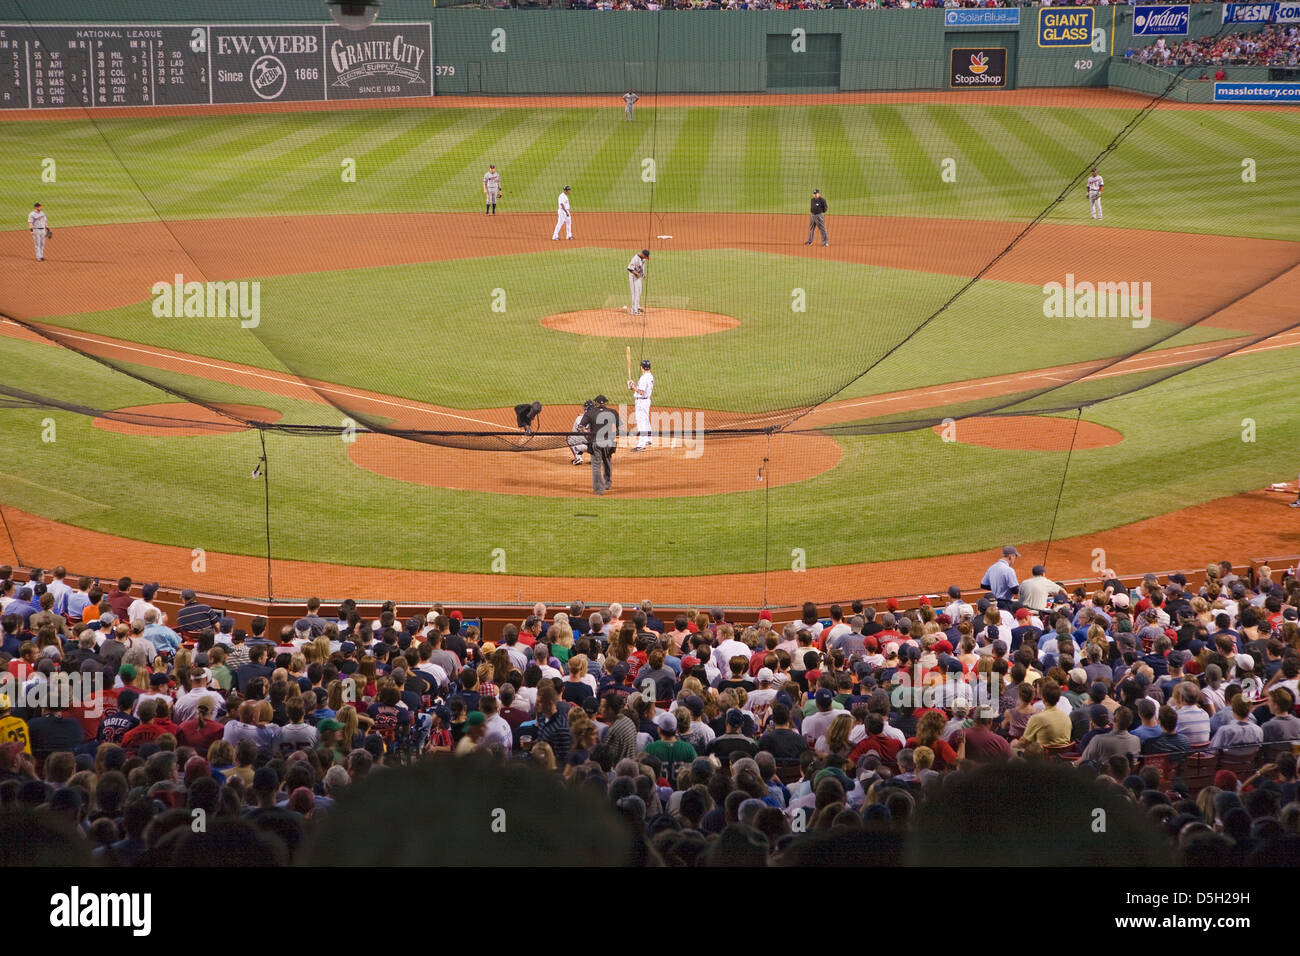 Park Home Red Sox Ma Stock Photos & Park Home Red Sox Ma Stock ...